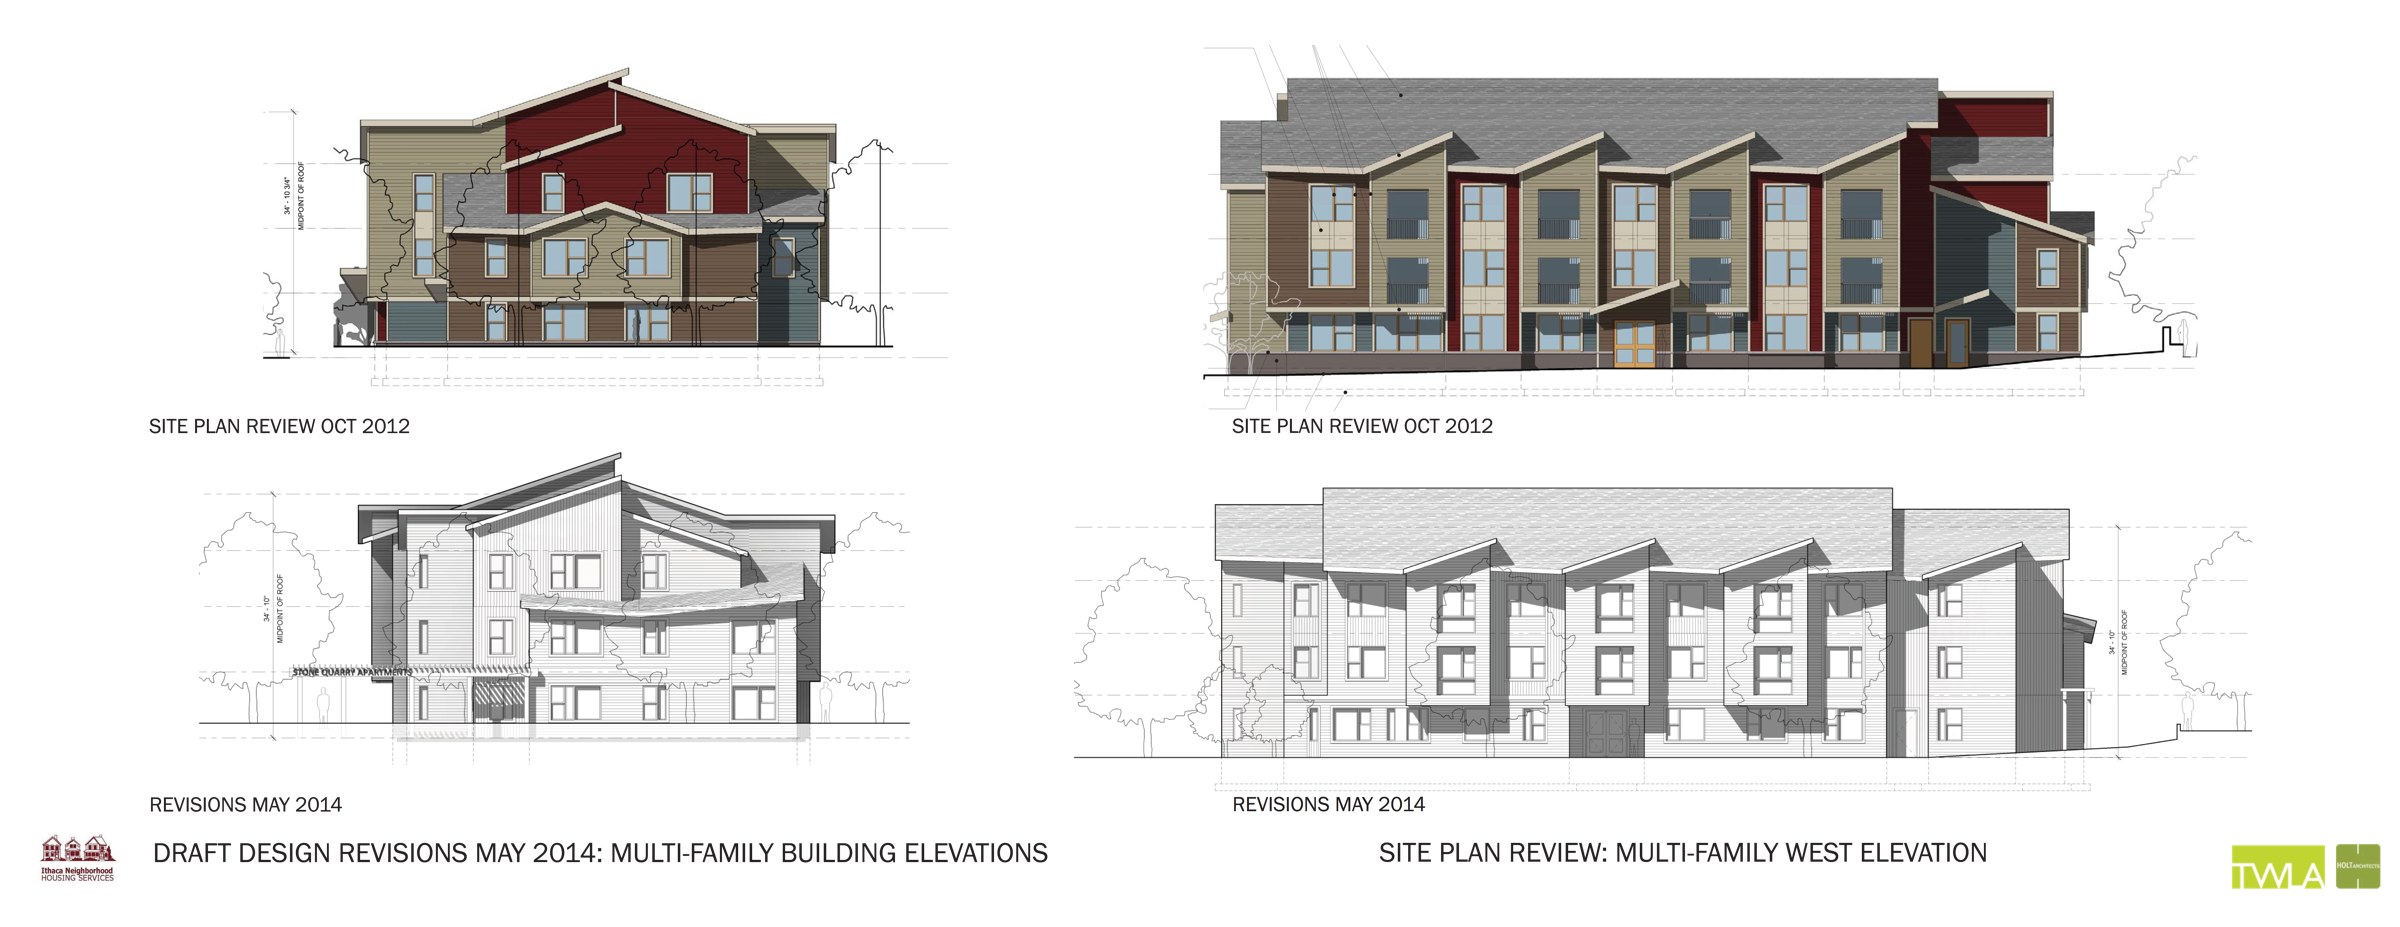 Stone Quarry Apartments - Site Plan Updates - 05-22-14 (dragged) 7